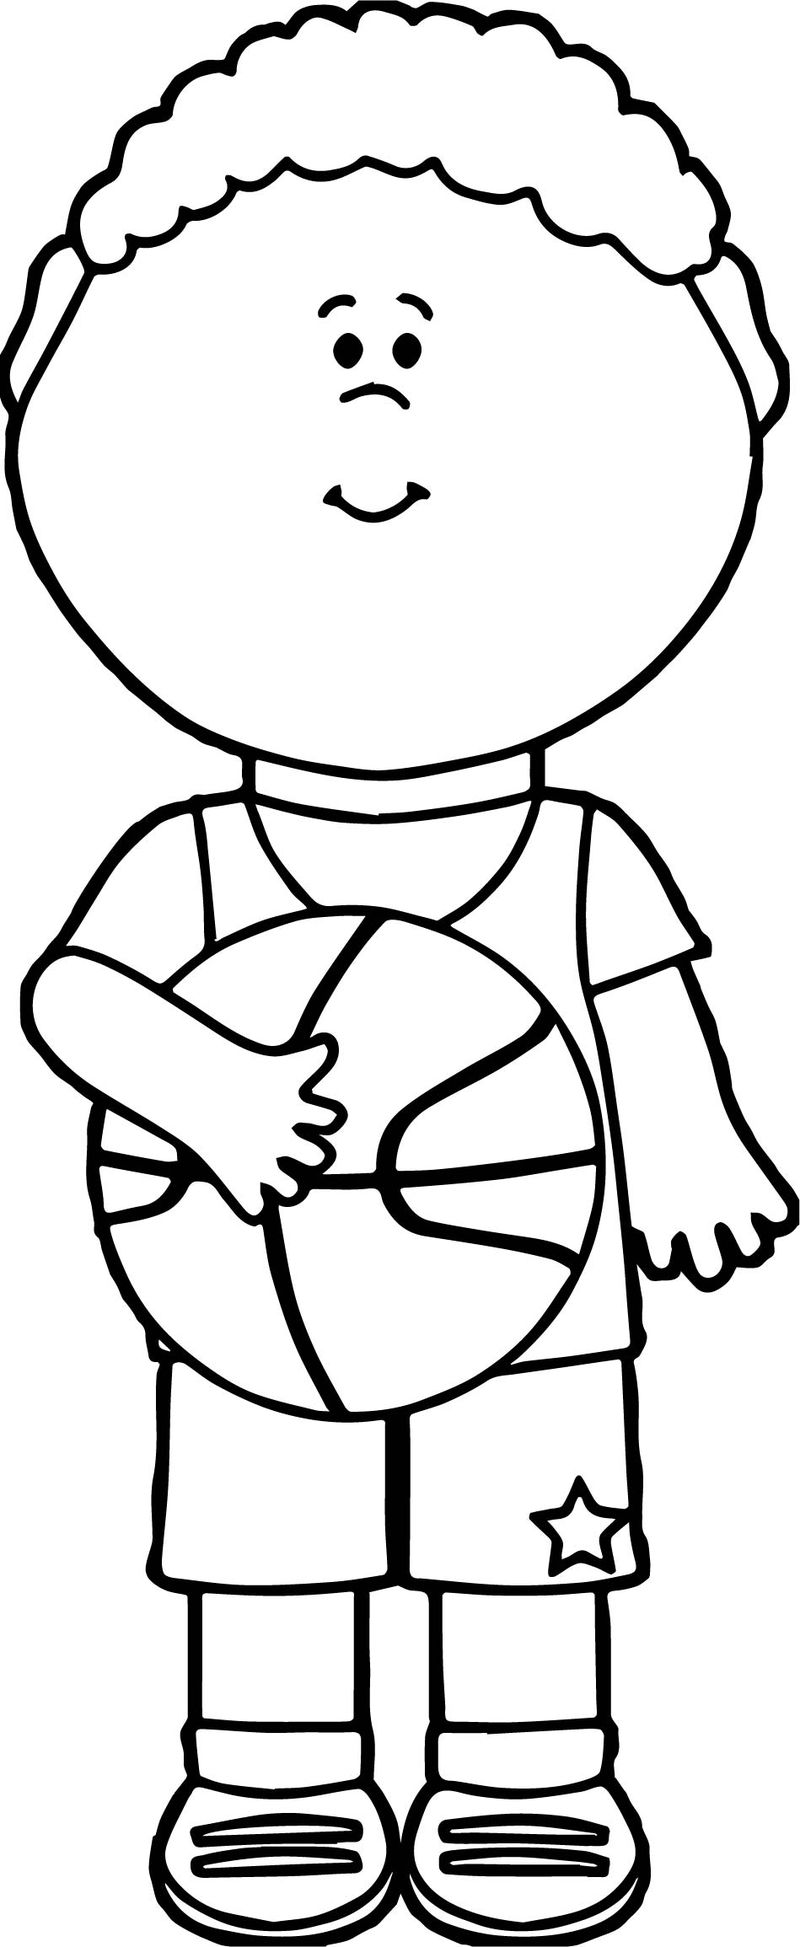 Basketball Player Playing Coloring Page